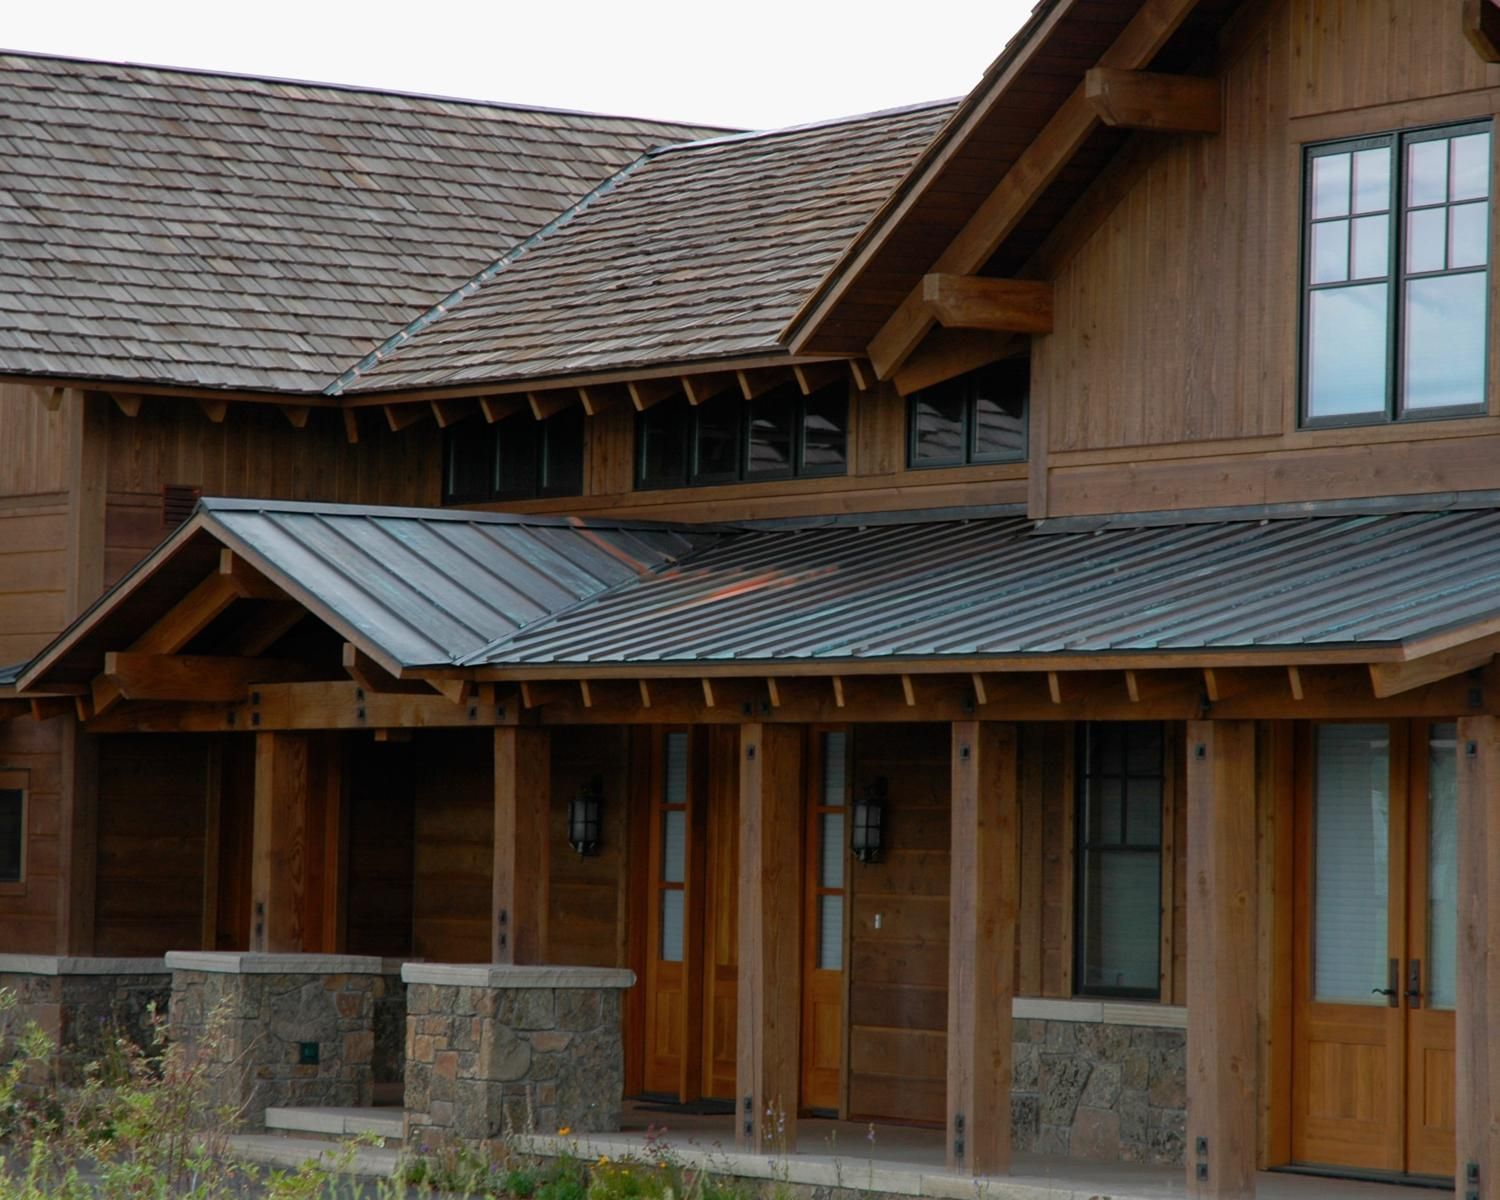 Using Metal Roofing as an Accent to Beautify and Protect